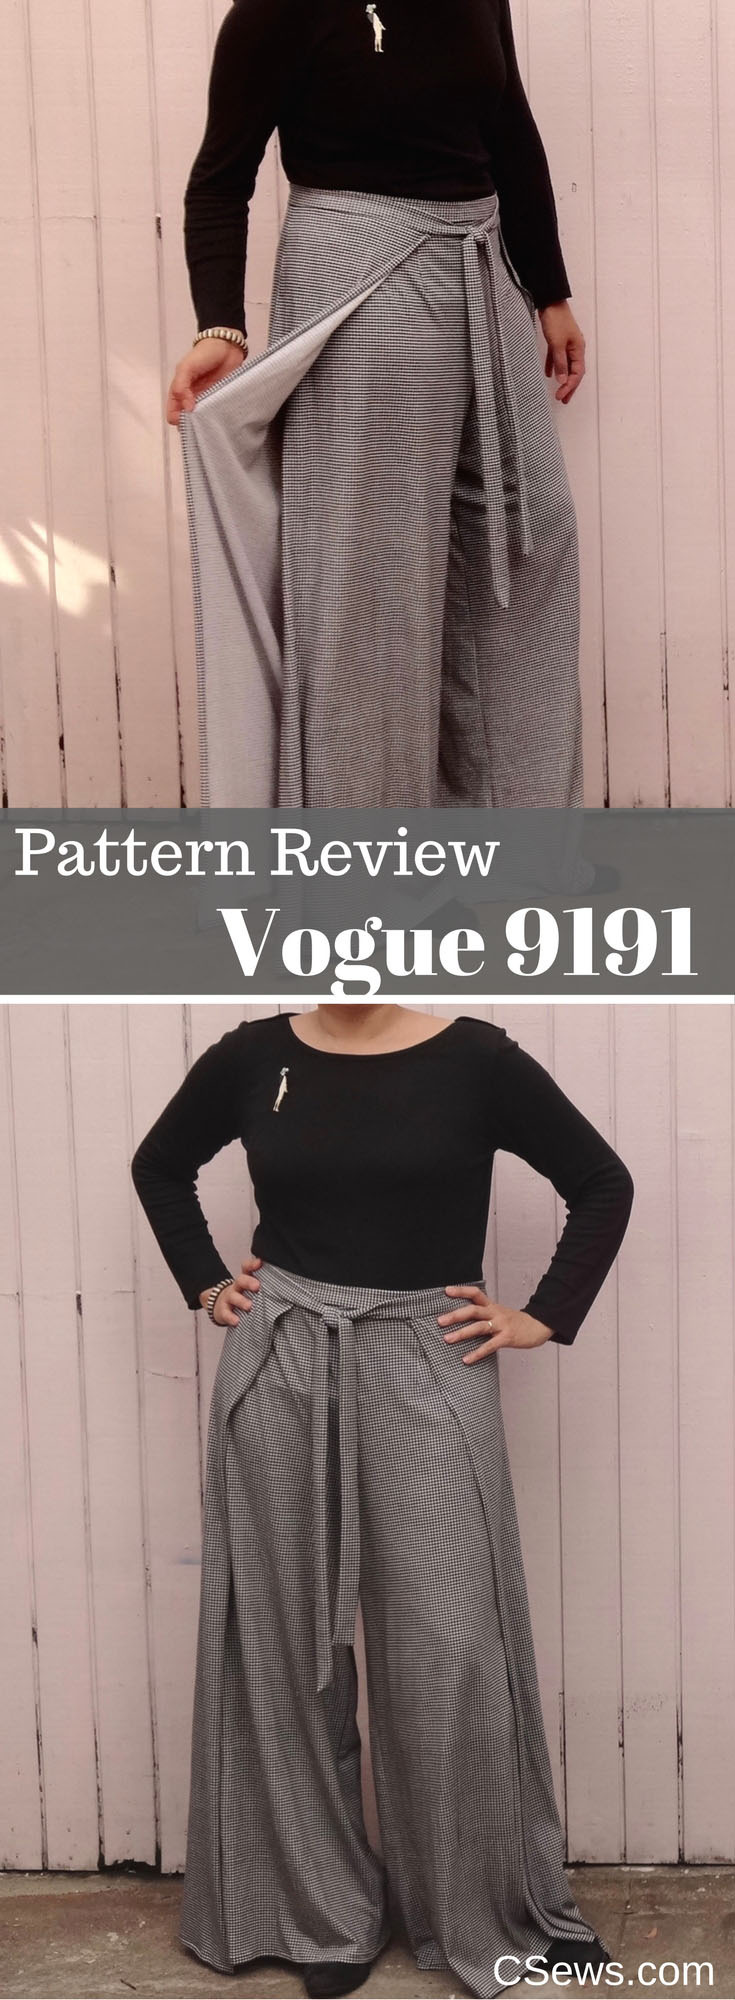 Pattern Review - Vogue 9191 wrap pants V9191